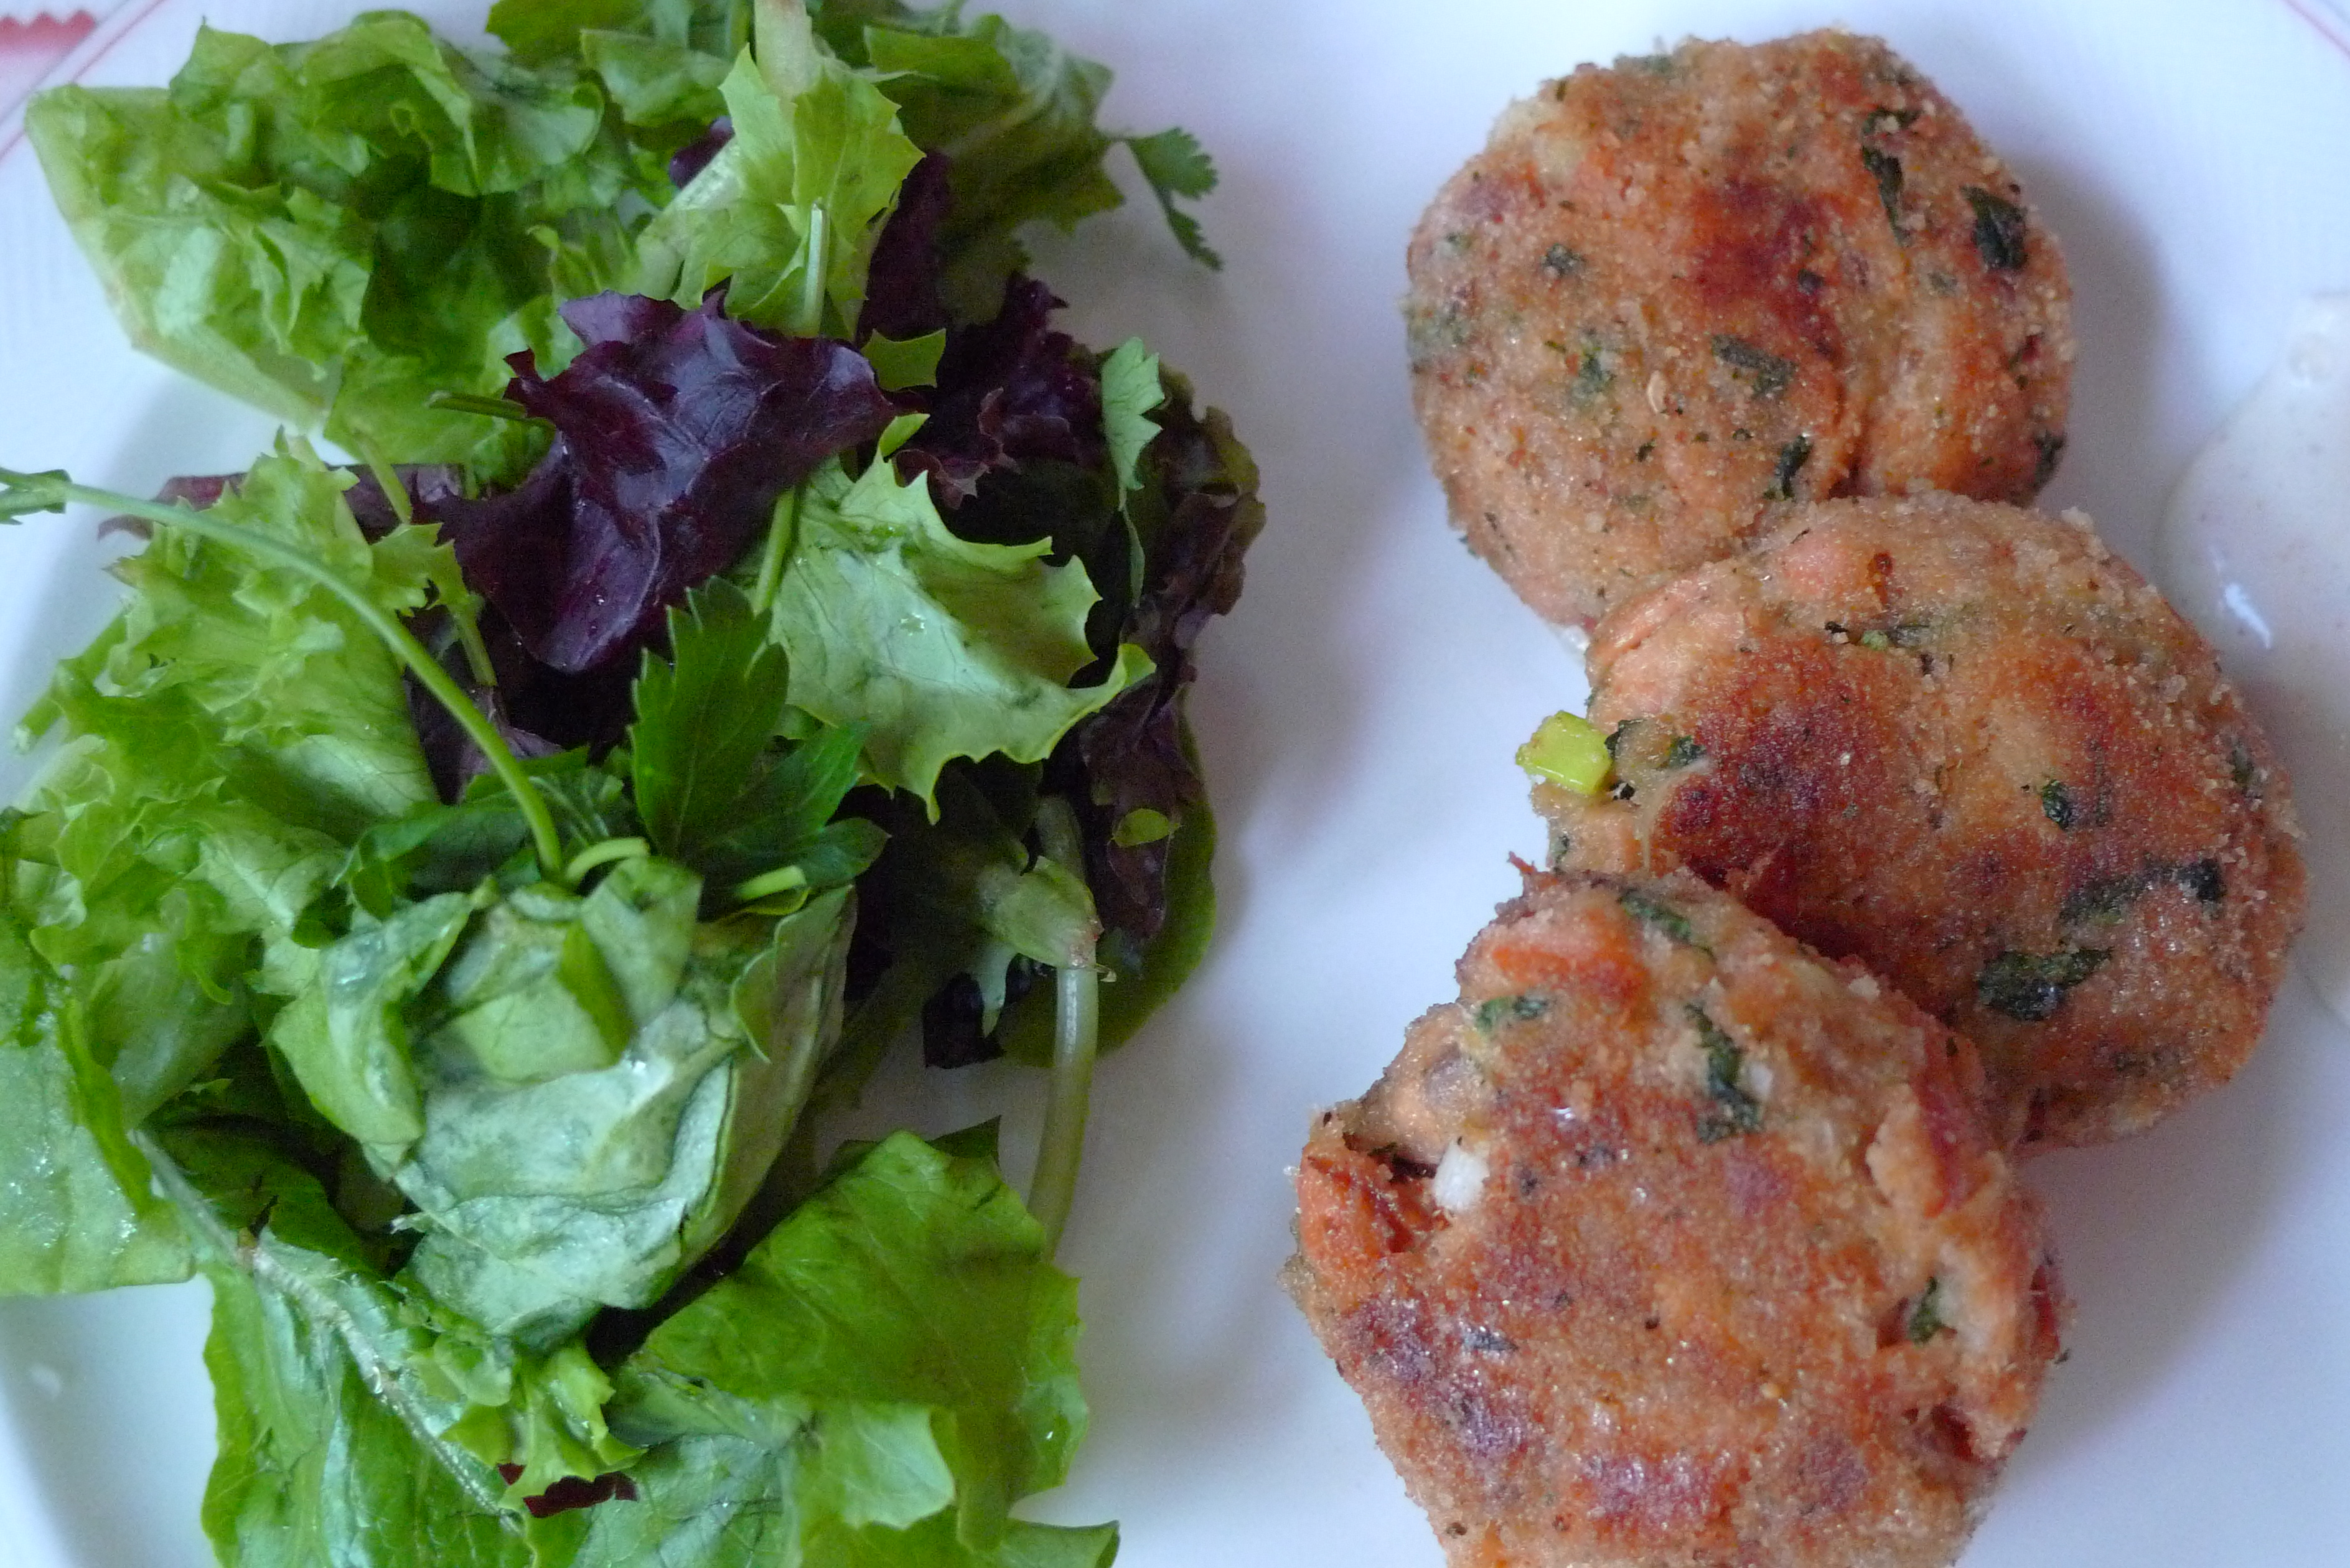 salmon cakes with herb salad